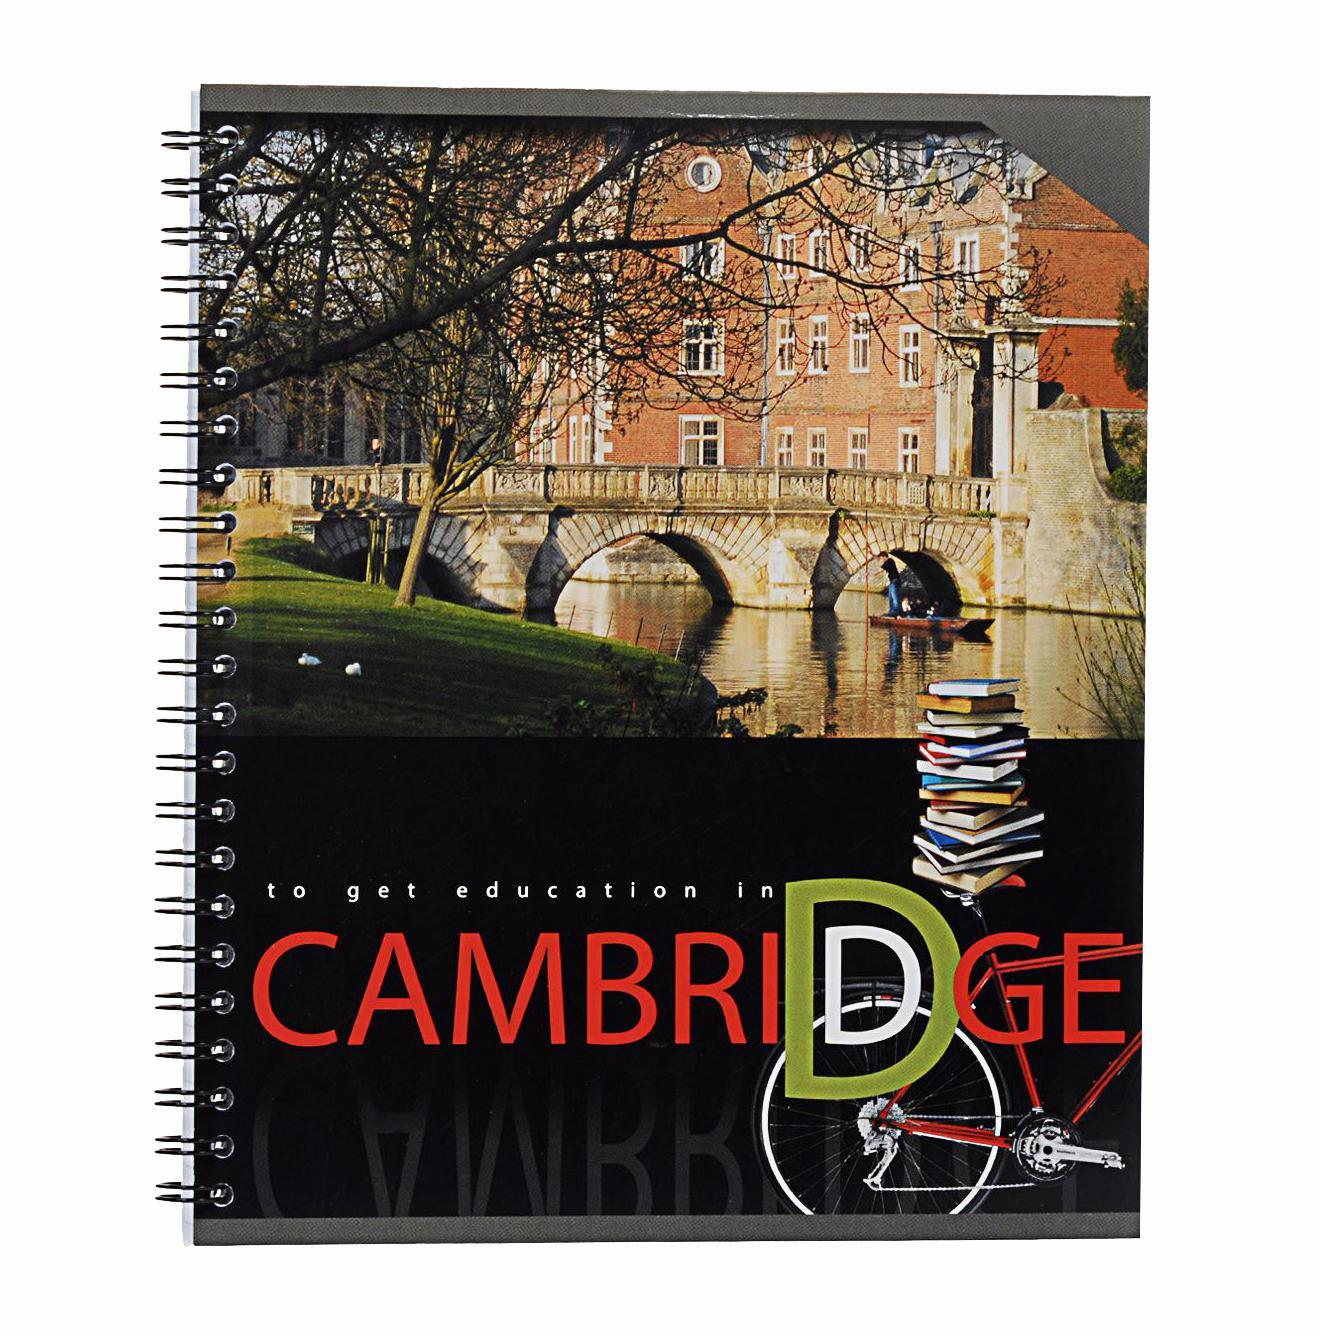 Тетрадь на спирали, 80л Cambridge,УФ-лак,мост37630мосттетрадь на спирали,80л Cambridge, УФ-лак, мост